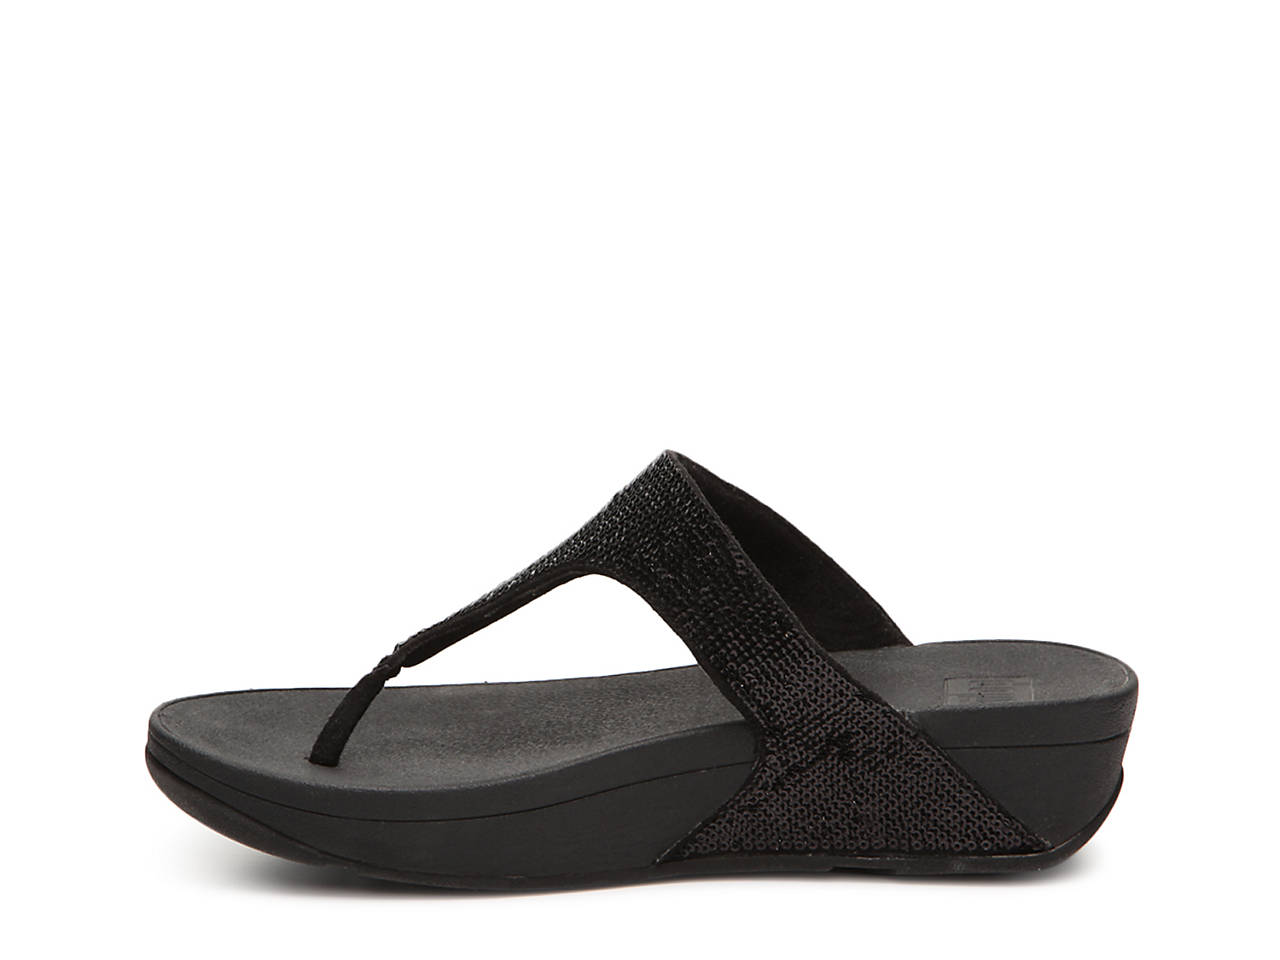 fe8f7bb670899 FitFlop Electra Wedge Sandal Women s Shoes